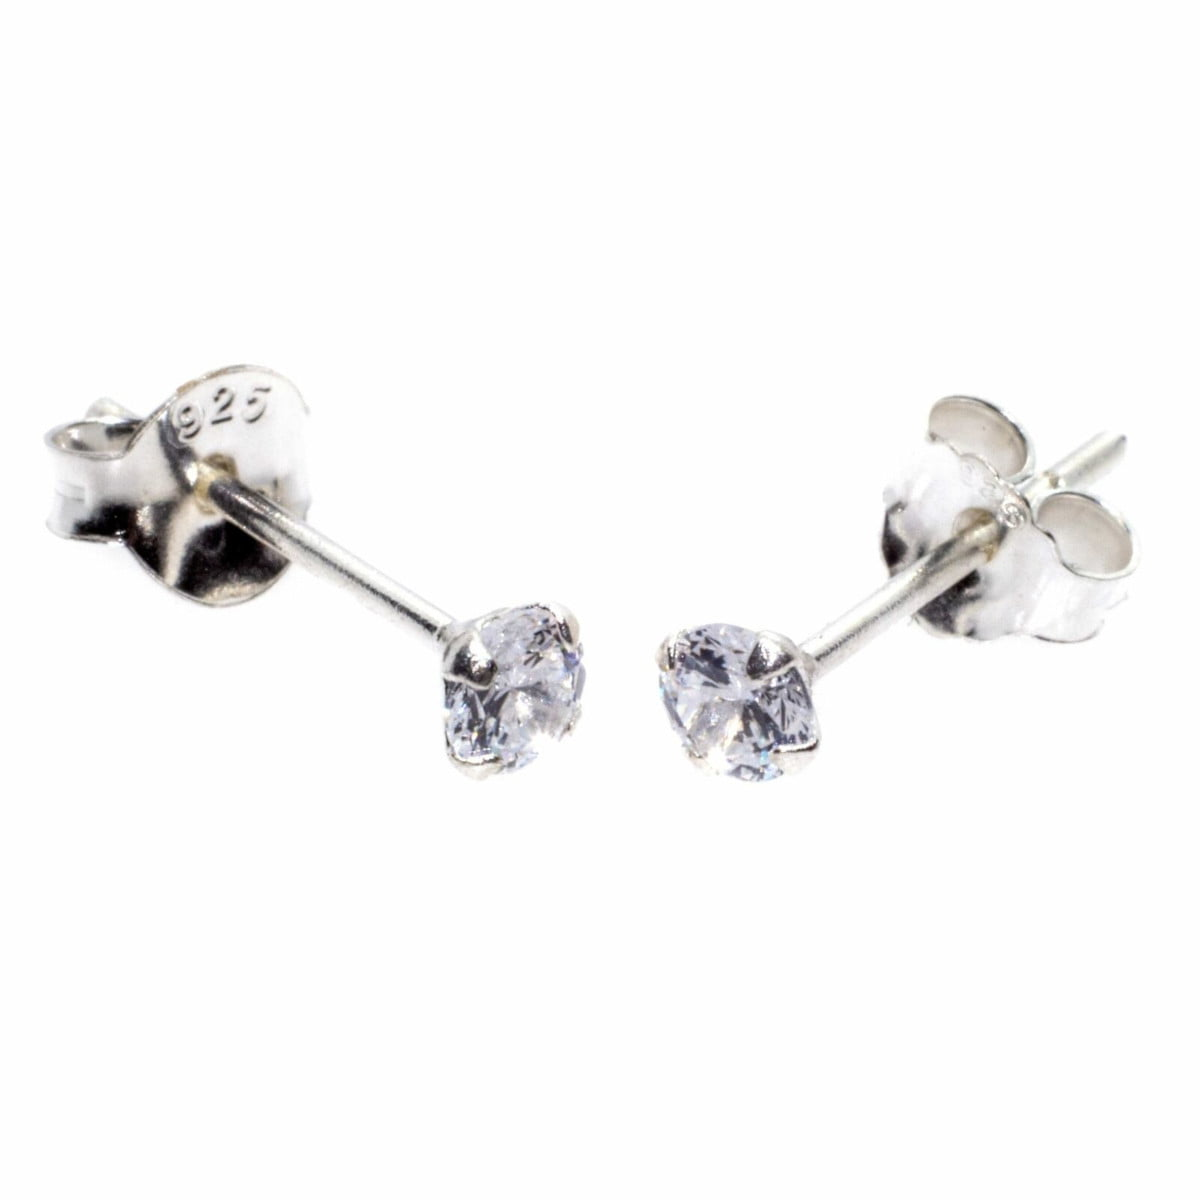 3 mm clear CZ stud round solitaire earrings in sterling silver 1